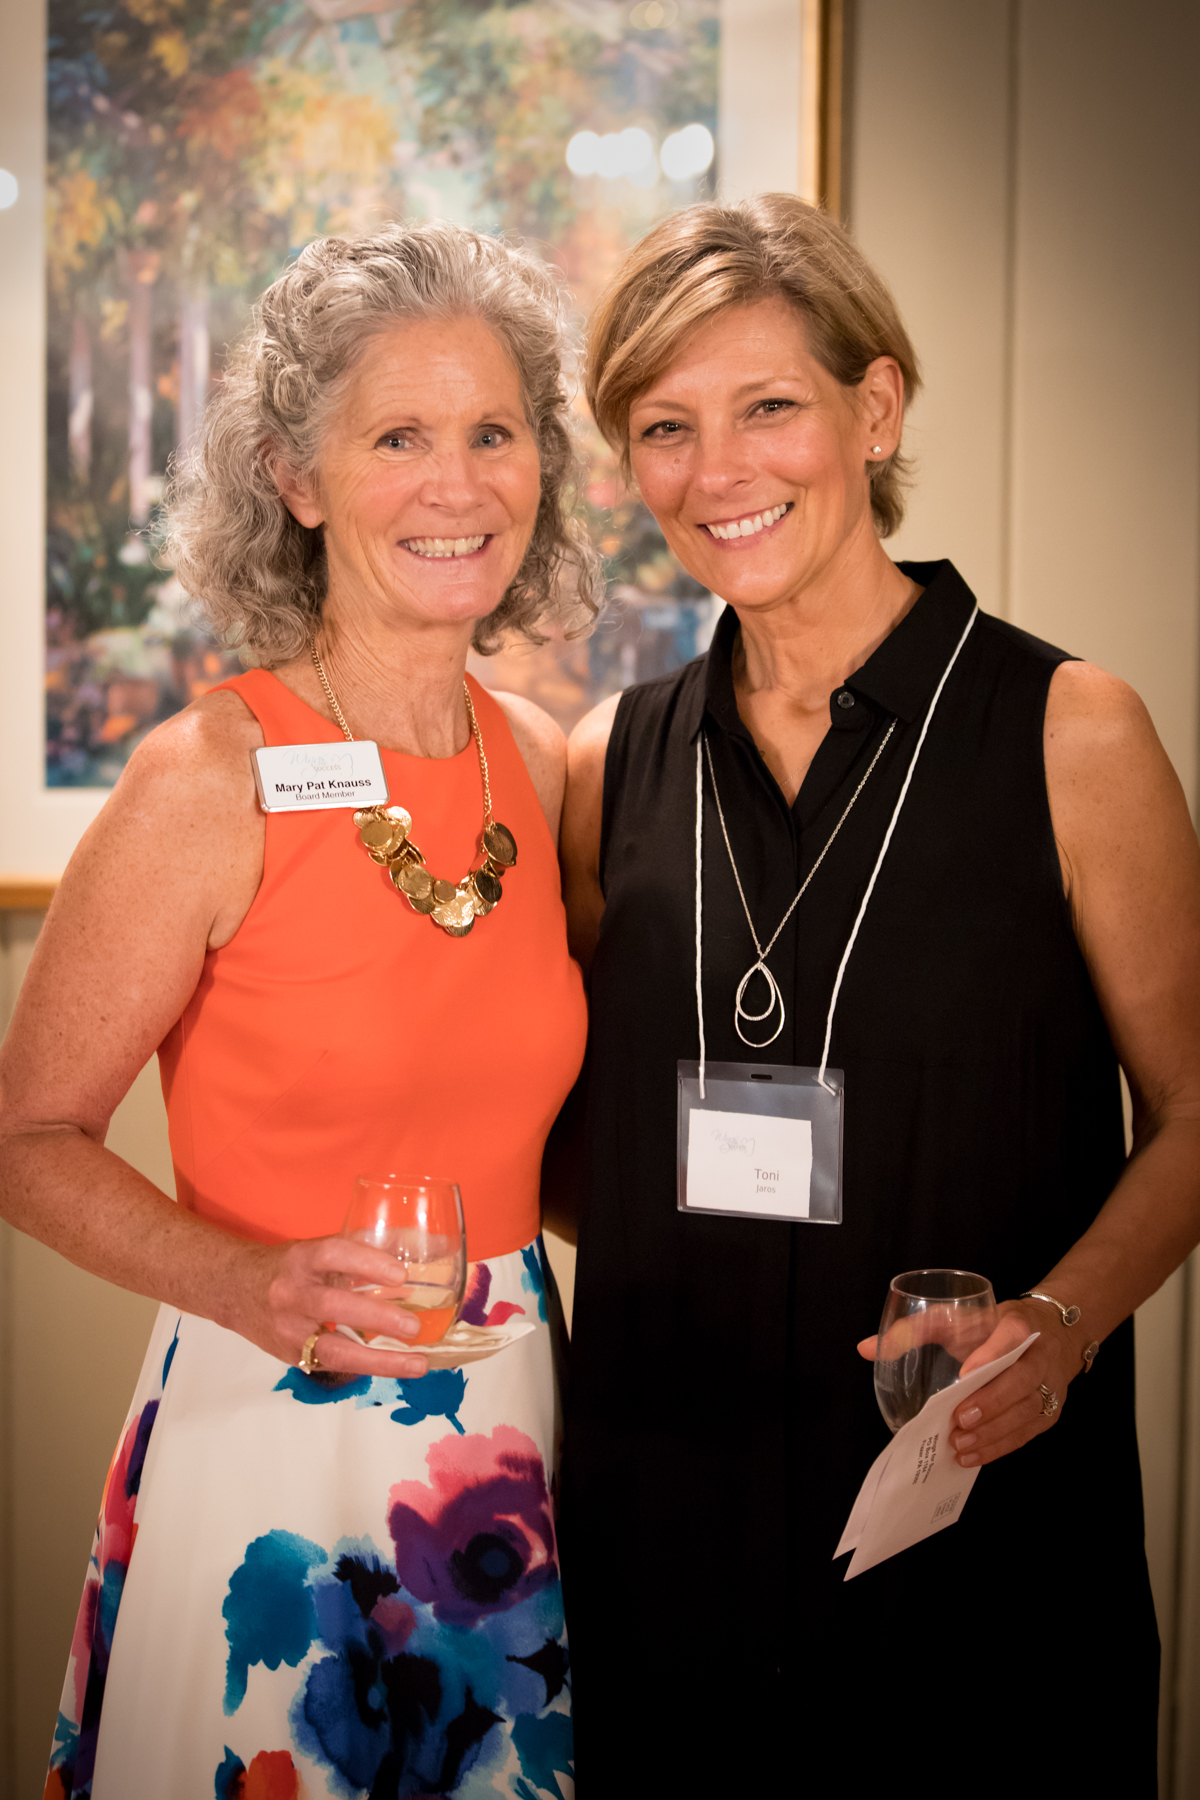 Mary Pat Knauss (L), member of the event planning committee and board member, with Toni Jaros